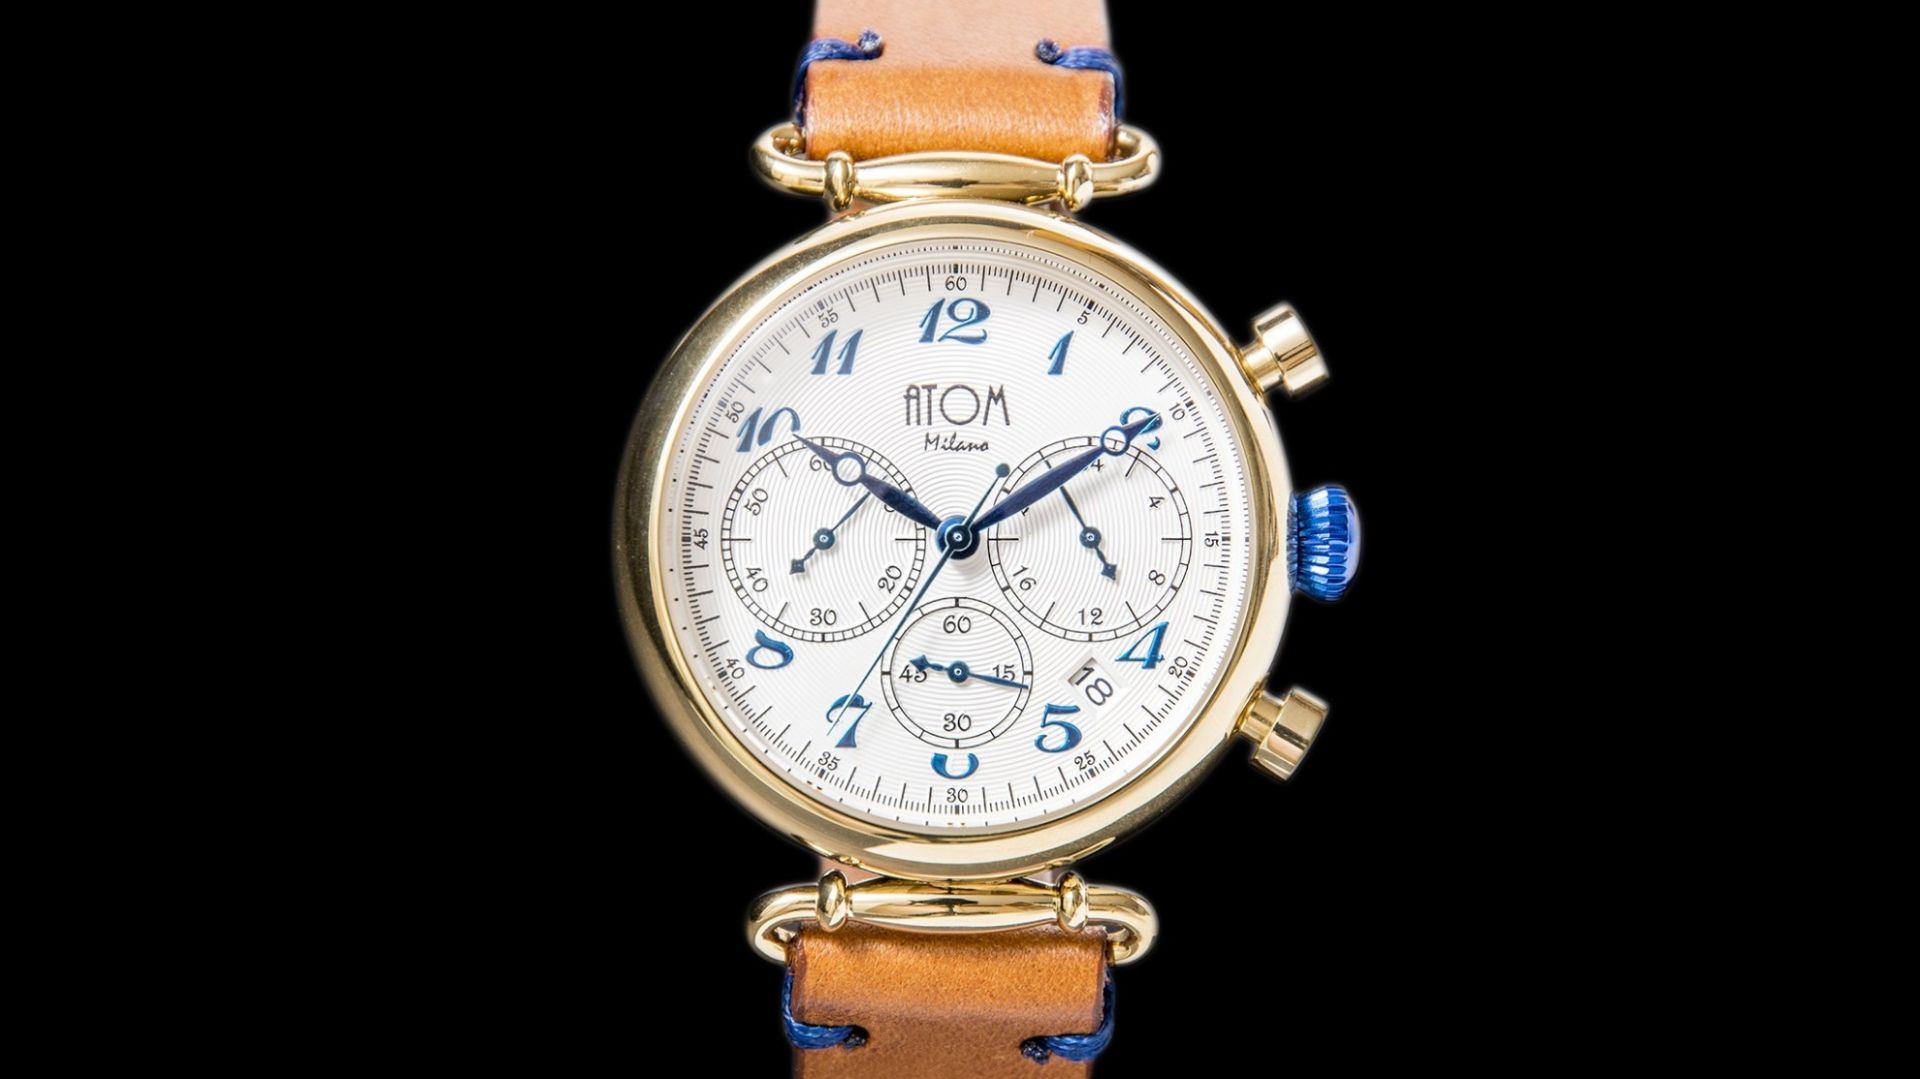 ATOM MILANO 40MM IN GOLD CASE AND LEATHER STRAP (BLUE)